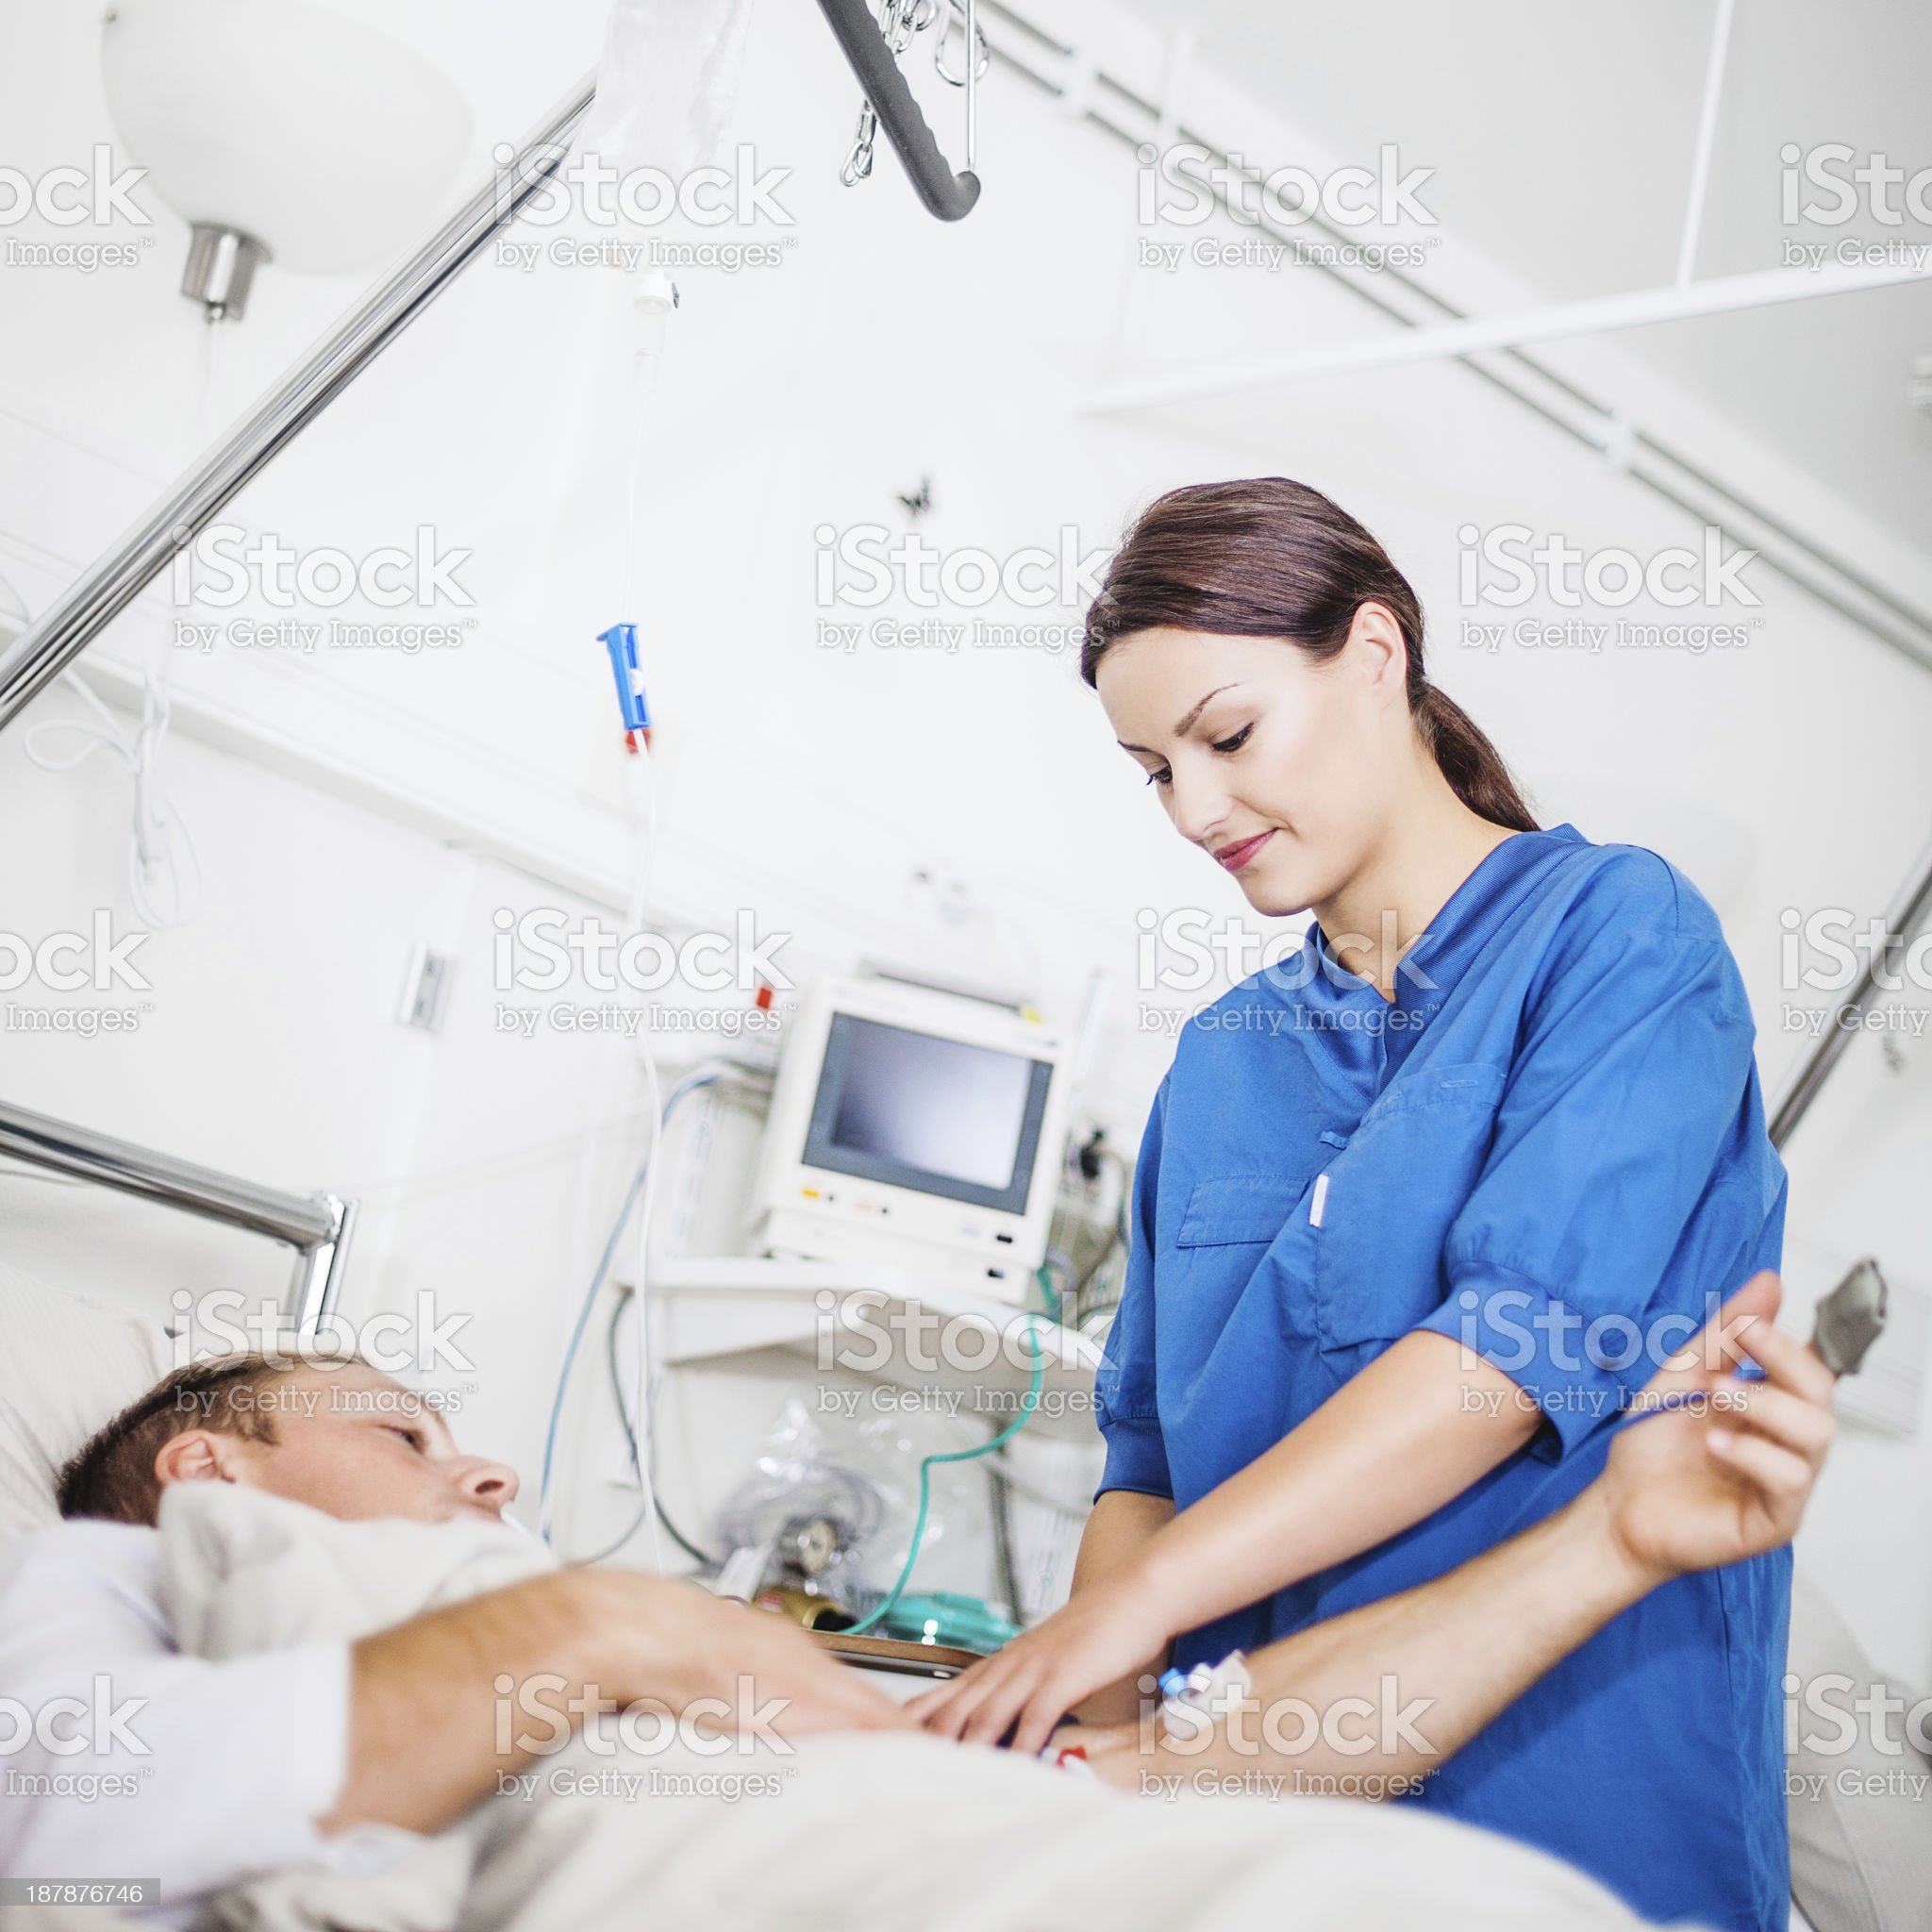 Nurse taking care of patient royalty-free stock photo